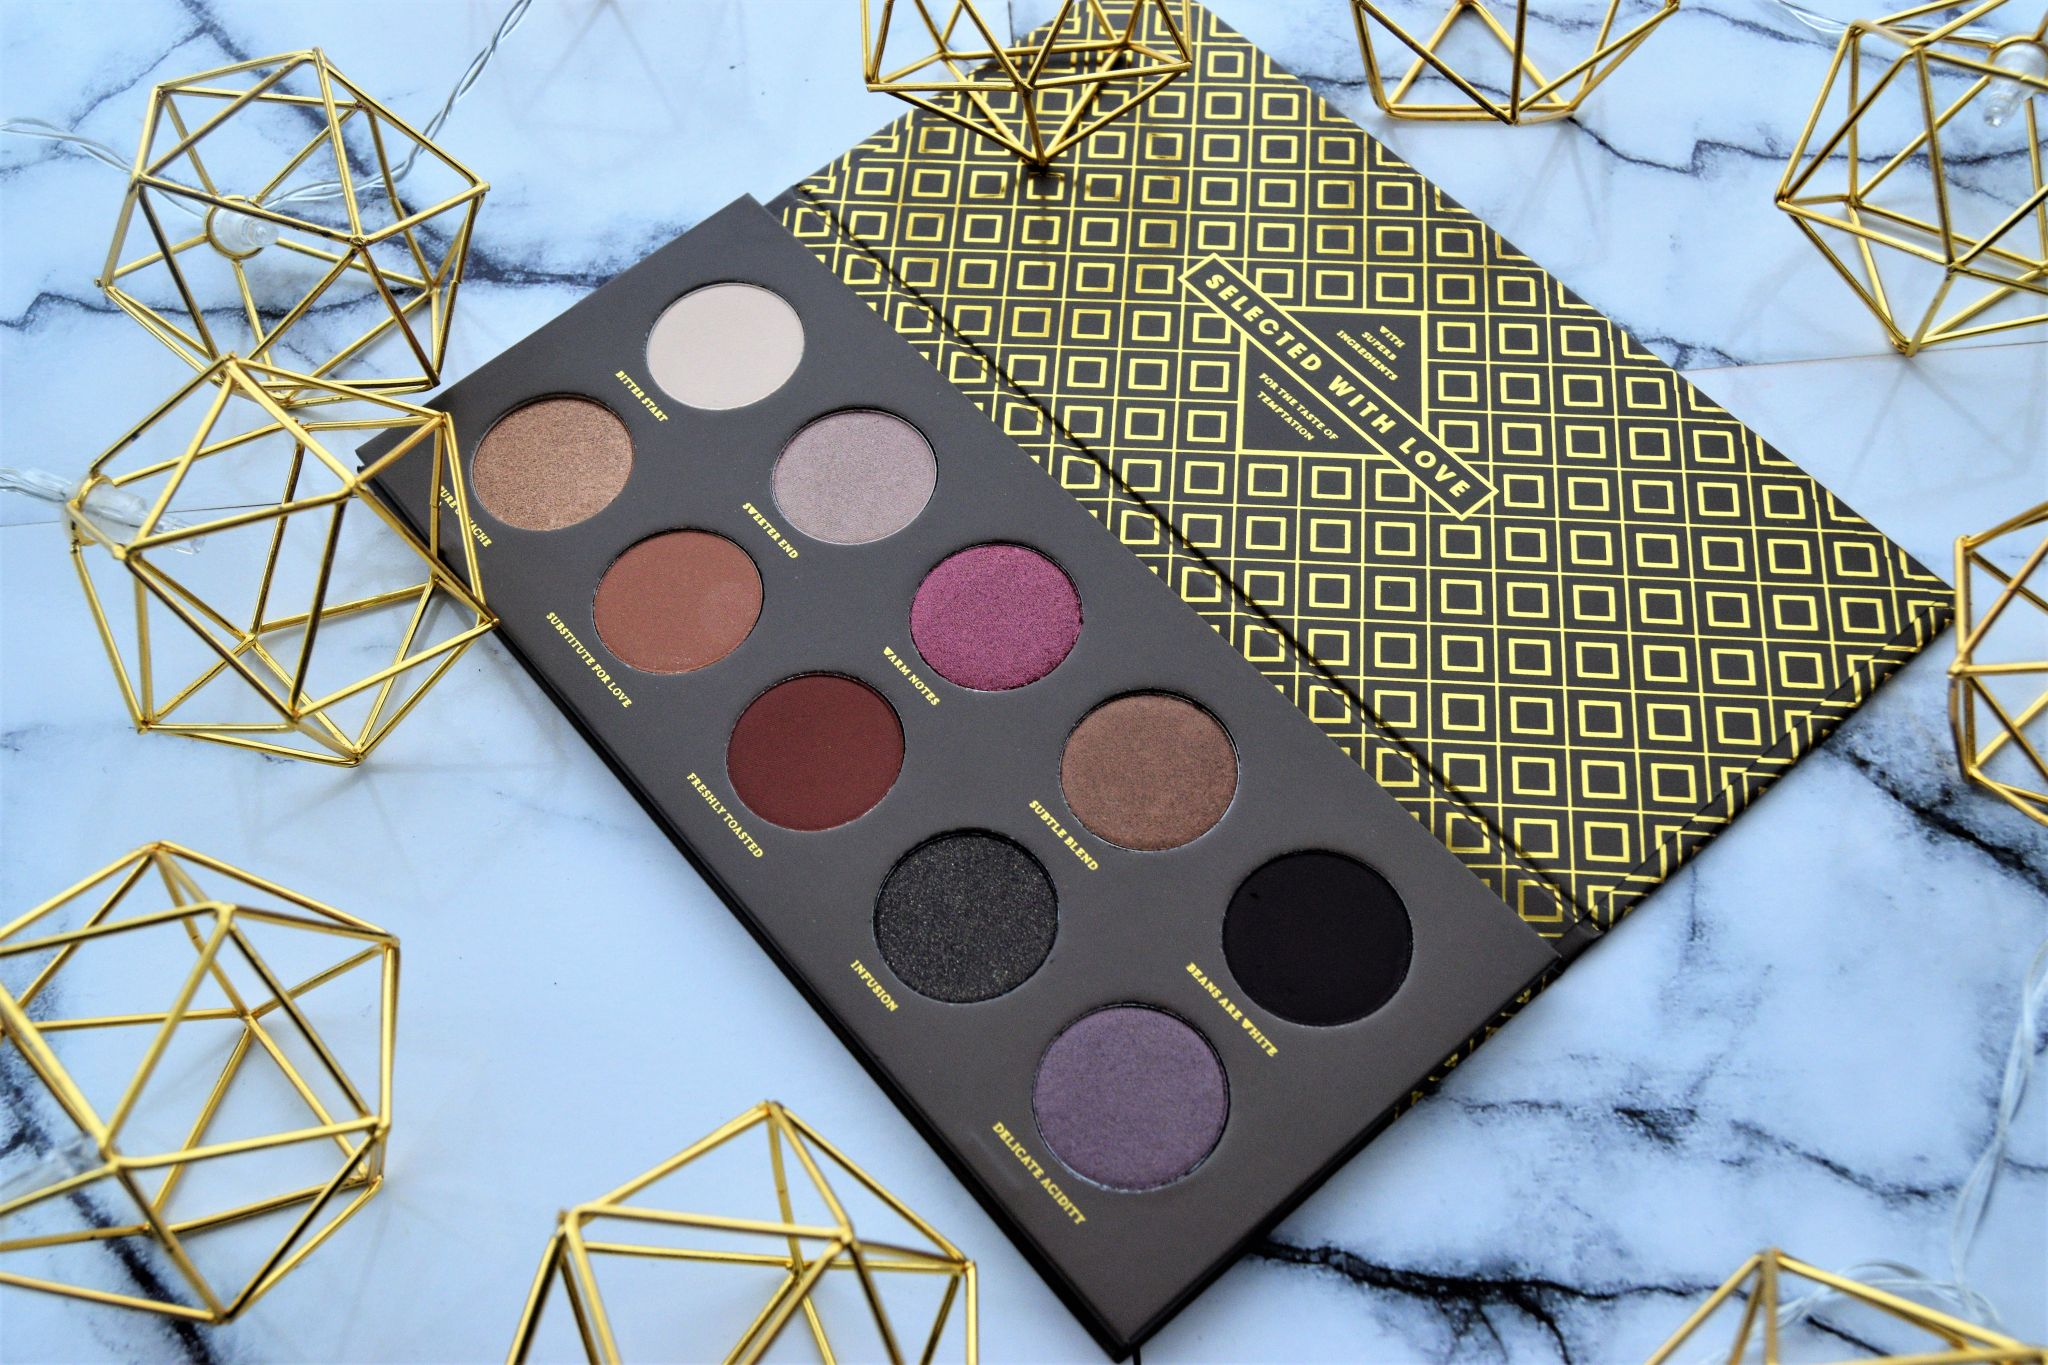 DSC 3398 1440x960 - Zoeva: Looking for the Perfect Palette for Summer?